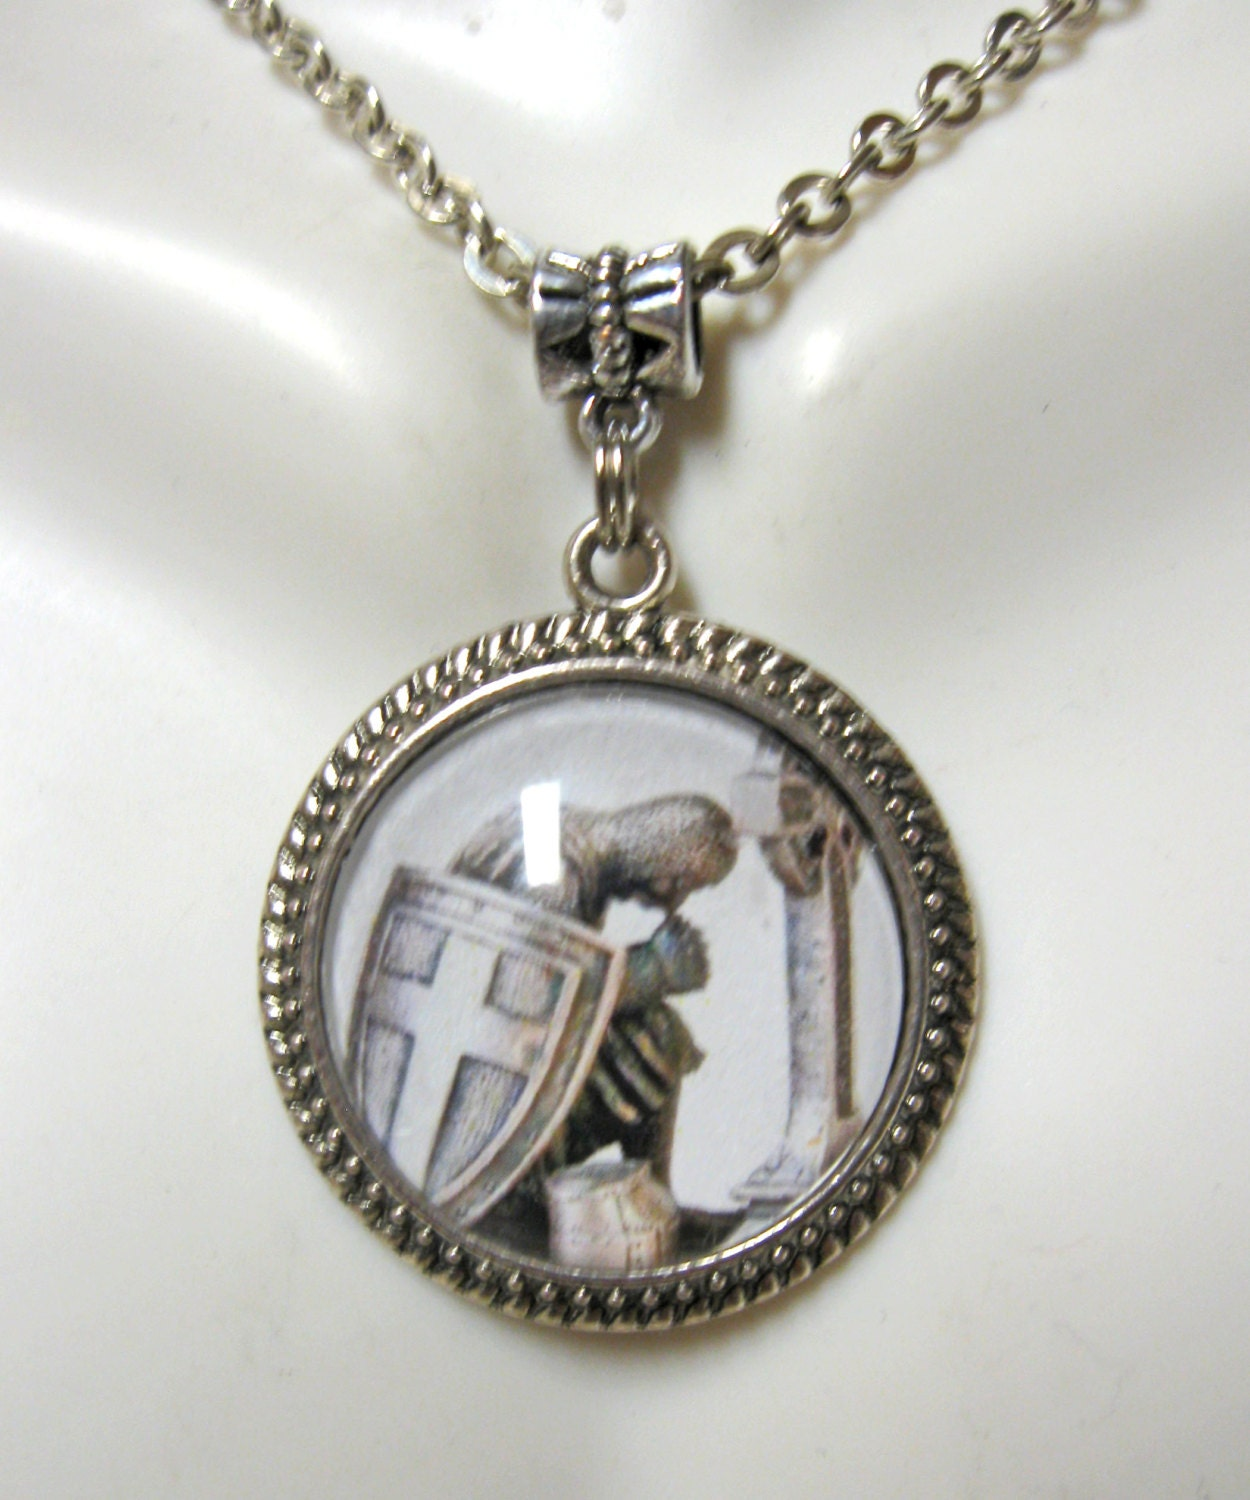 templar in prayer at cross pendant and chain by